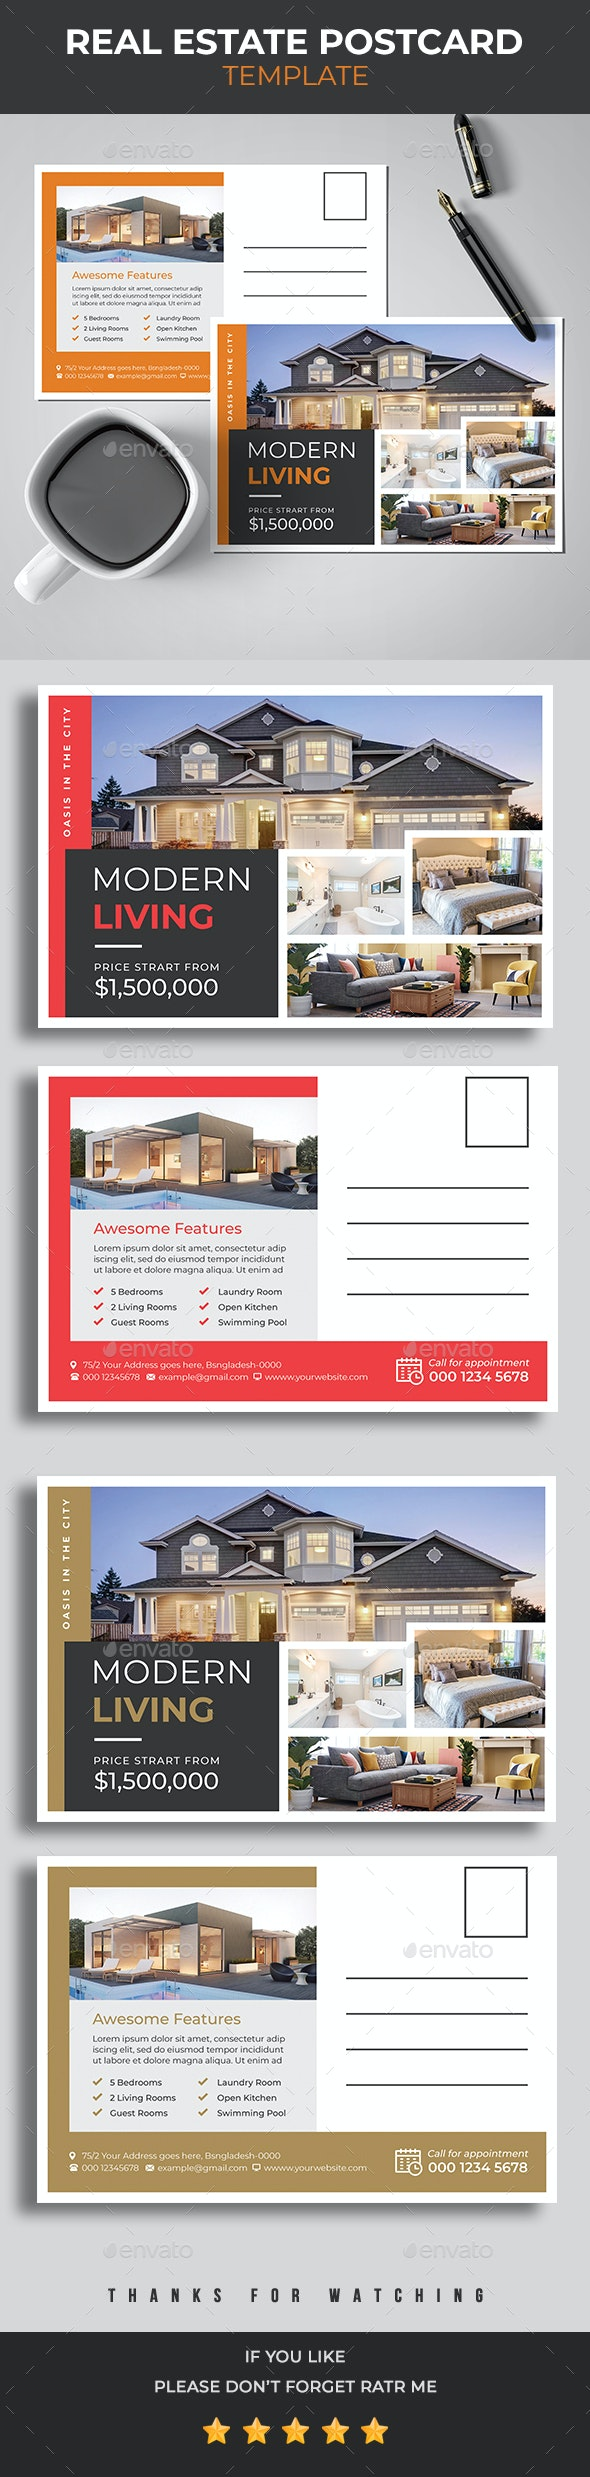 Template carte commerciale immobilier 2